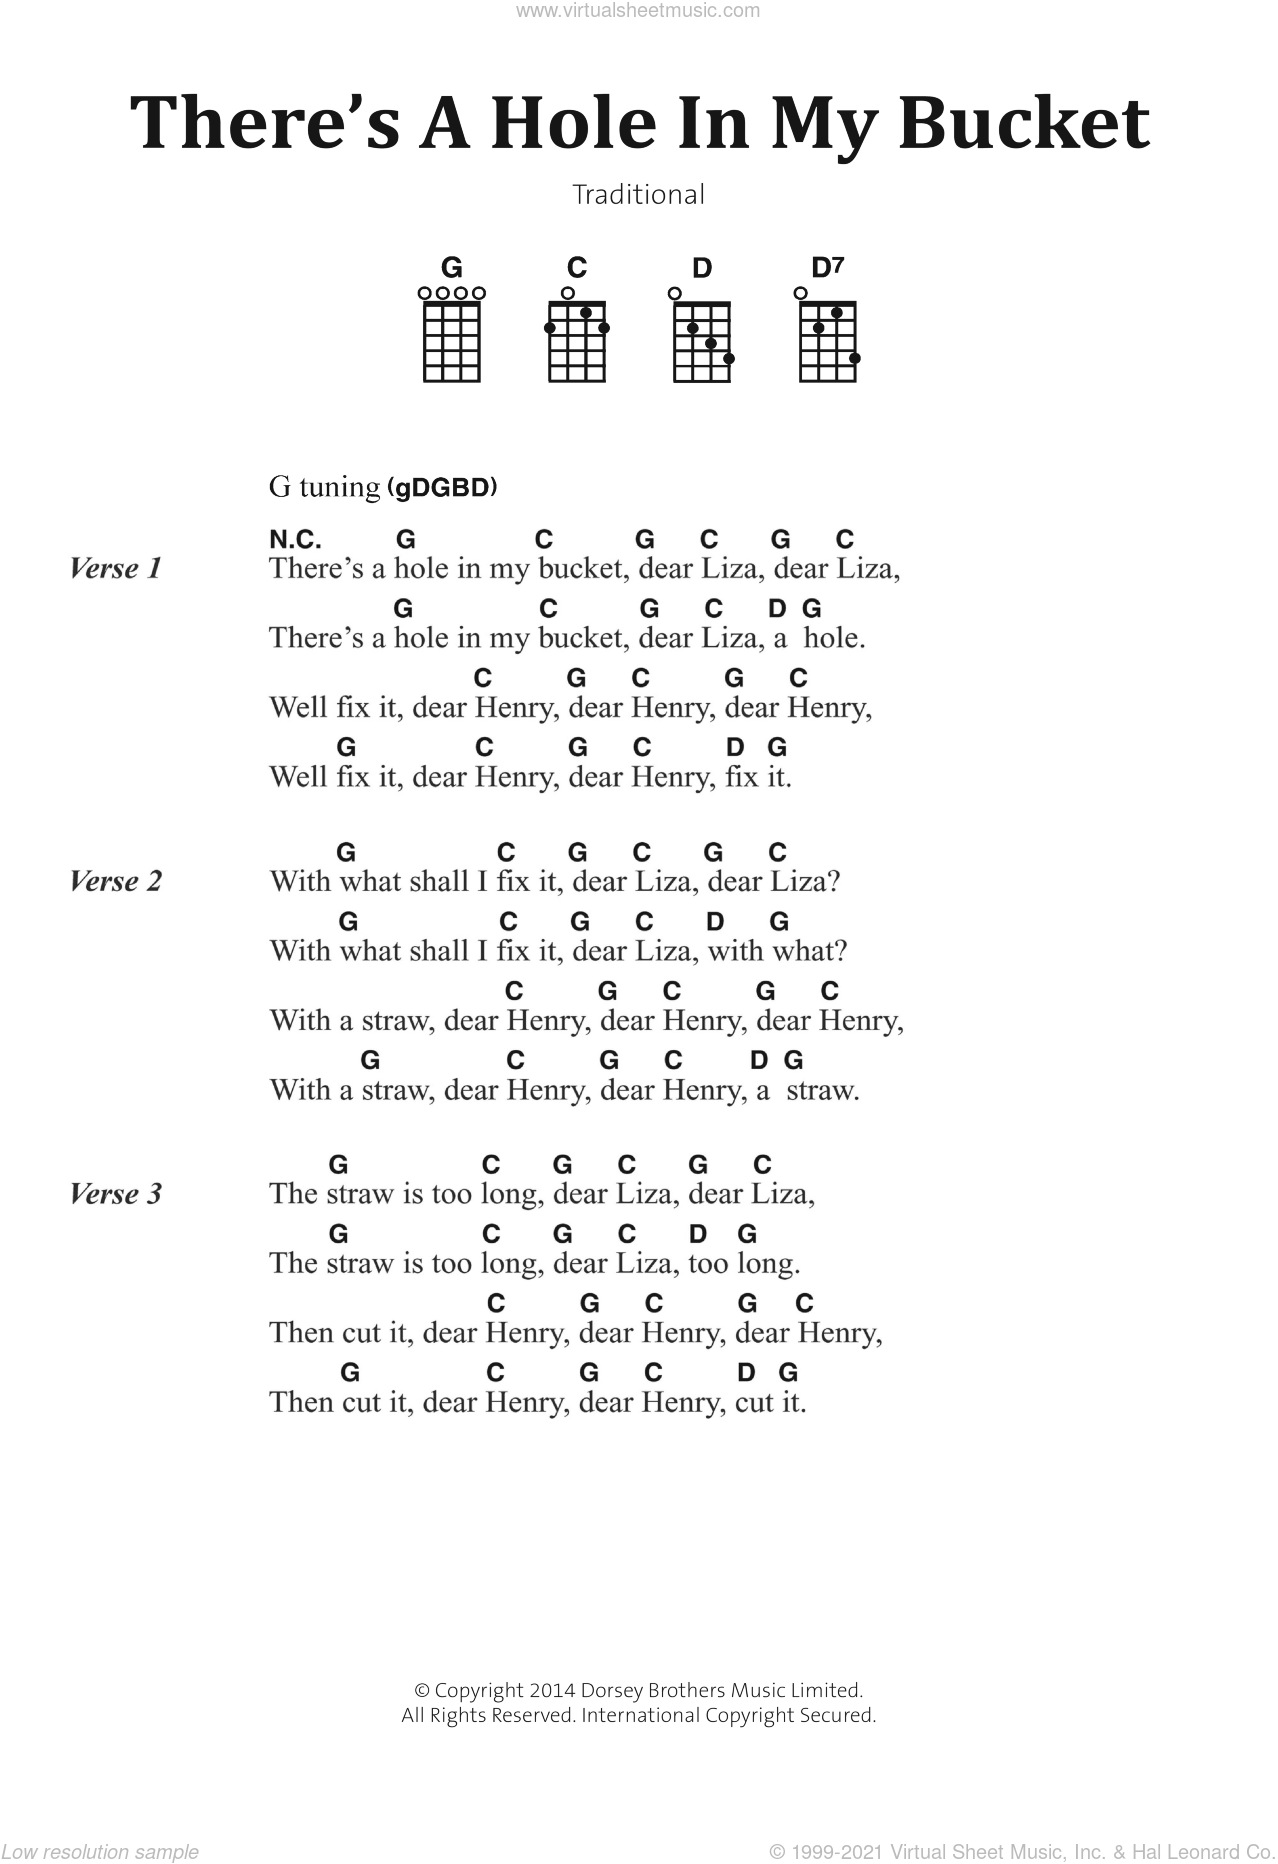 There's A Hole In My Bucket sheet music for voice, piano or guitar. Score Image Preview.